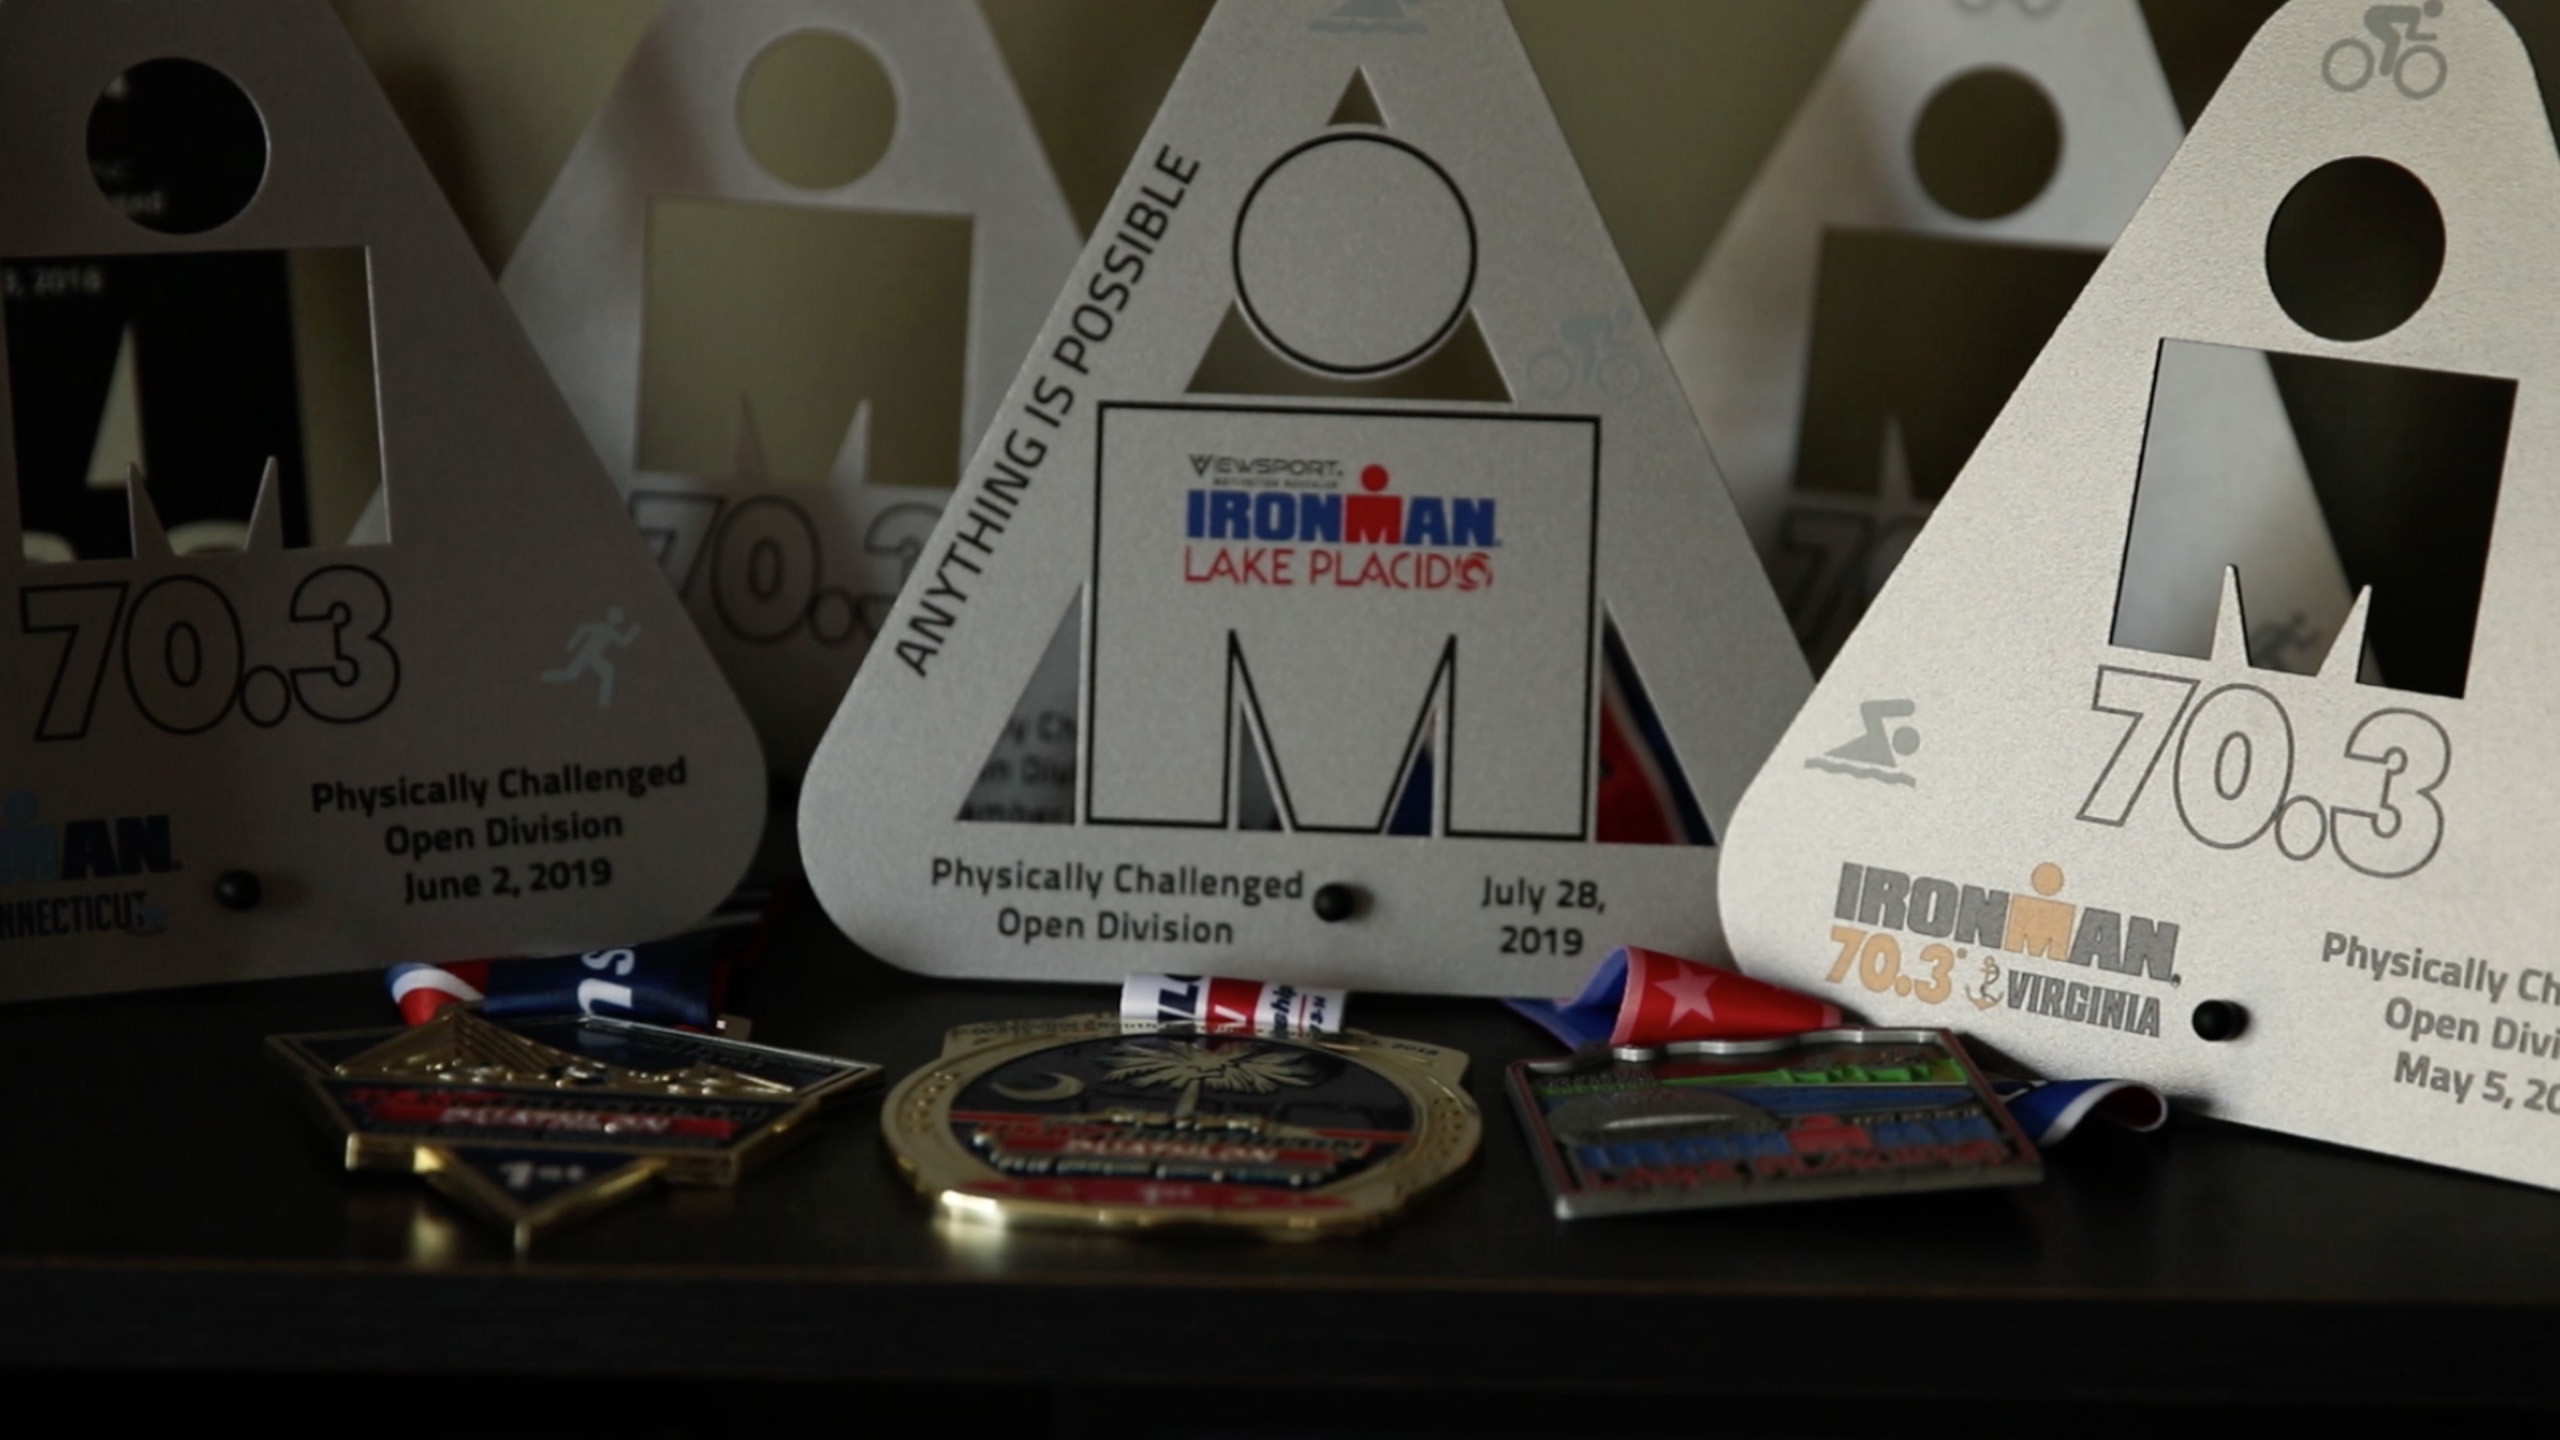 Ironman and race medals that paratriathlete Ulf Oesterle has won.